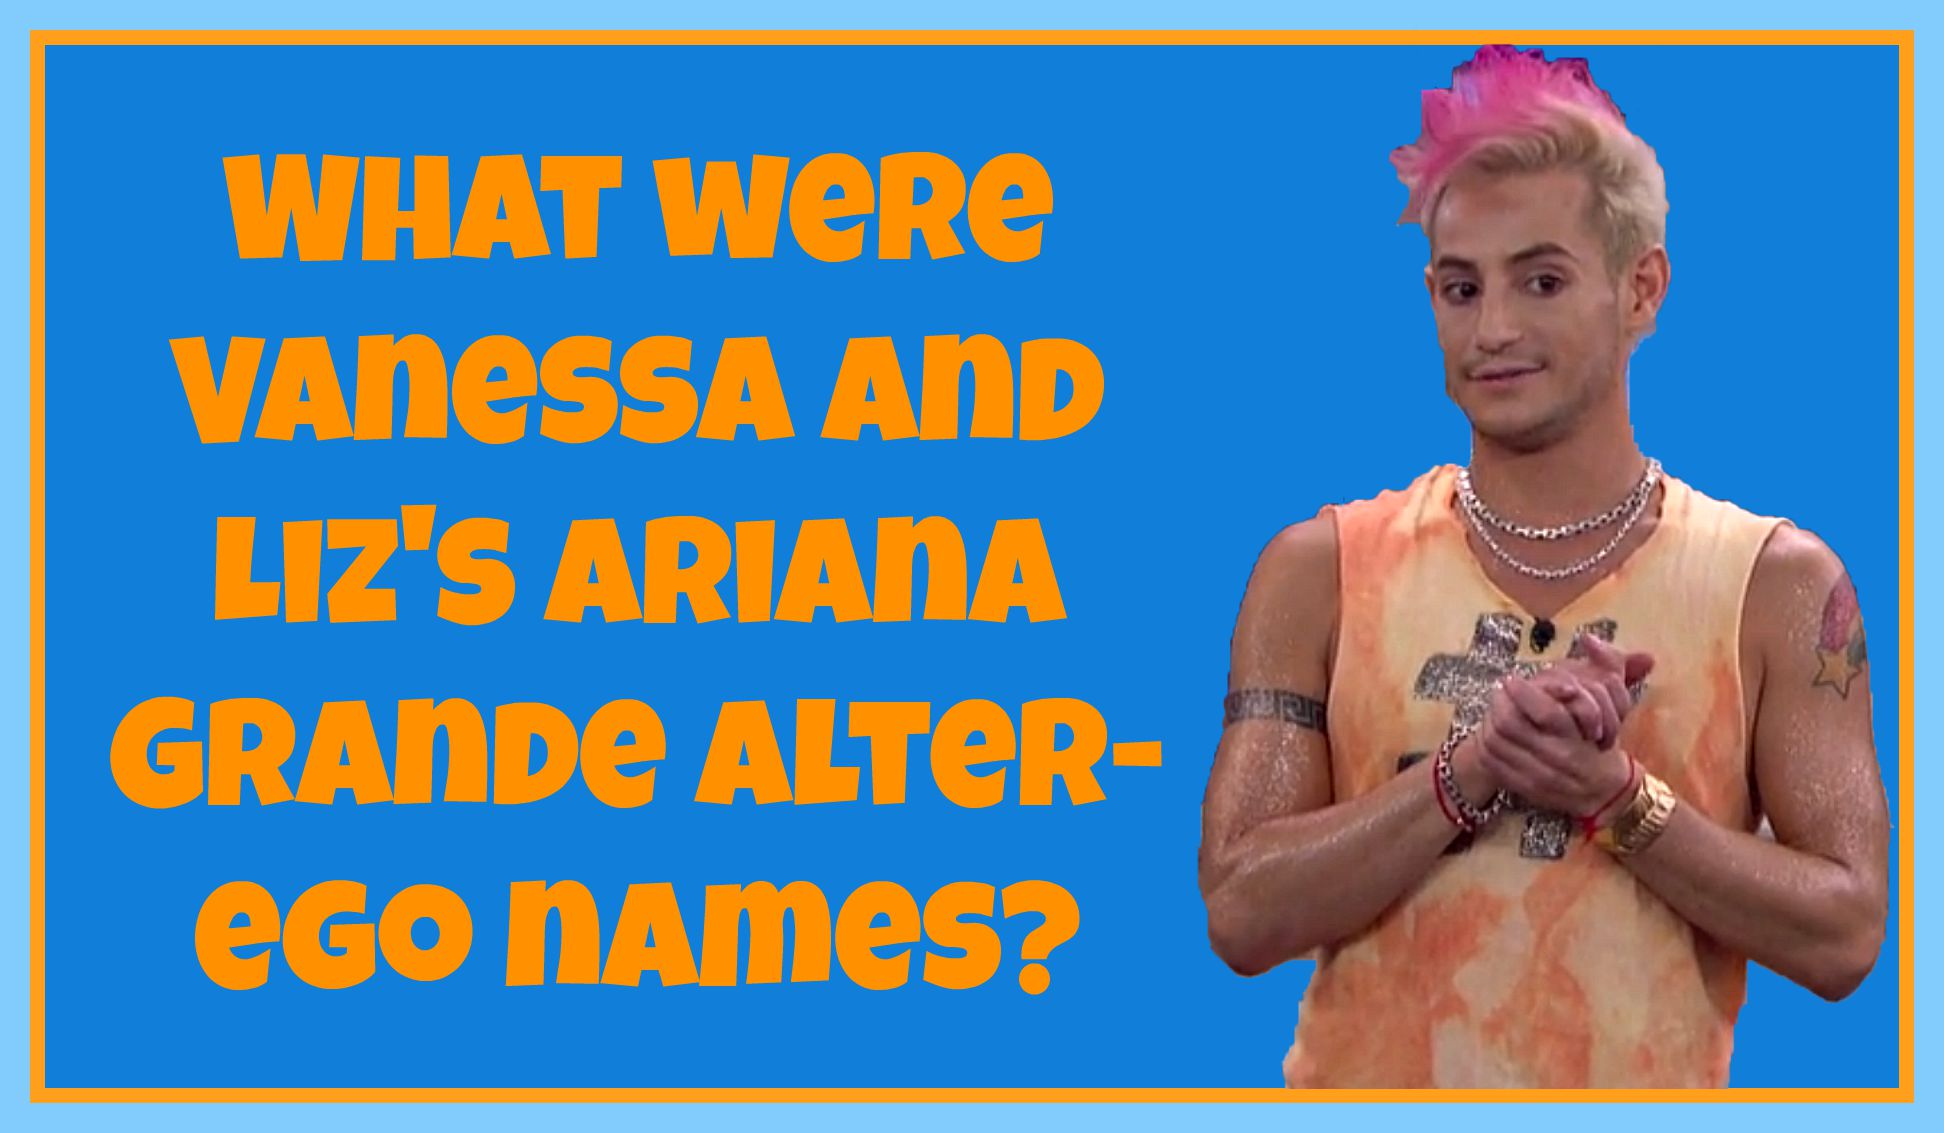 What were Vanessa and Liz's Ariana Grande alter-ego names?